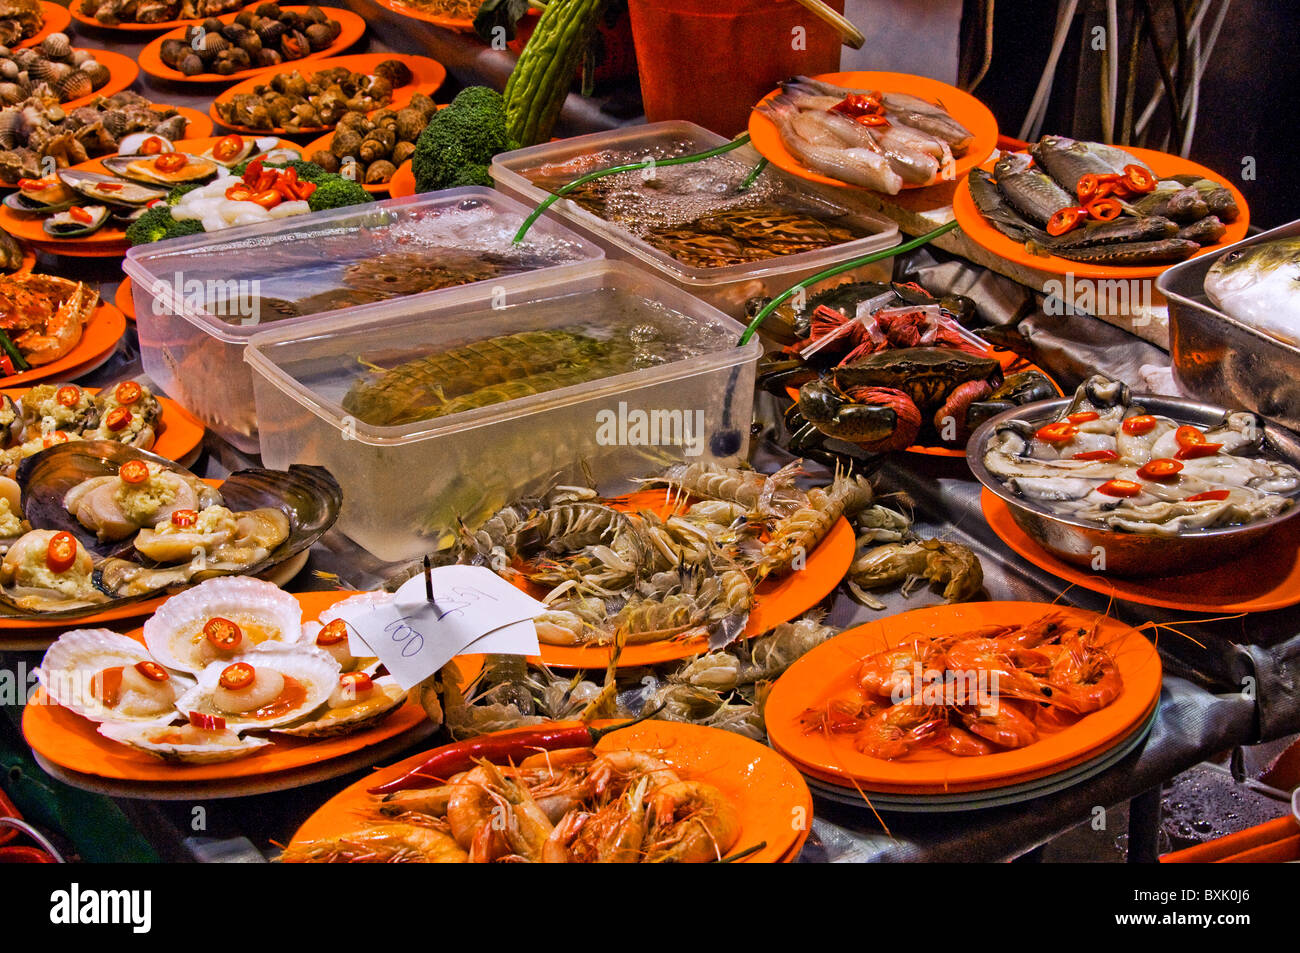 Unique weird plates of food on display at ourdoor restaurant in downtown Hong Kong China - Stock Image